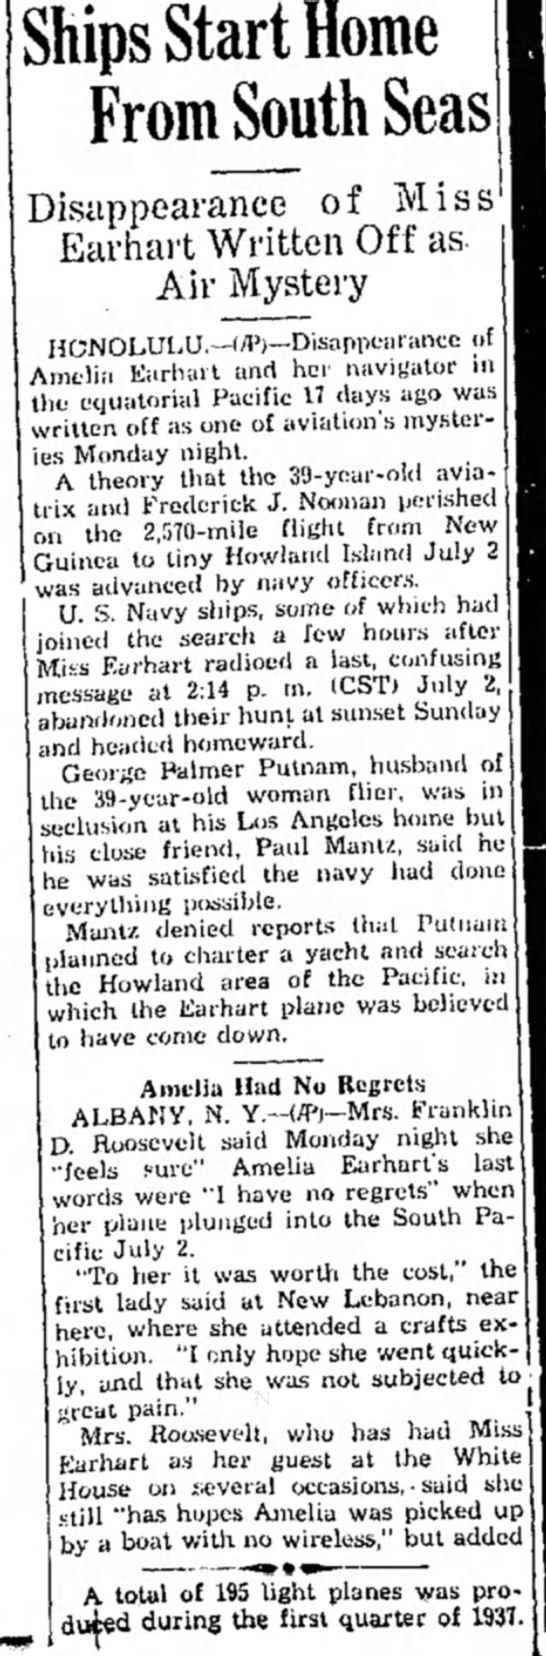 disapperance of miss earhart... part 1 - Ships Start Home From South Seas Disappearance...